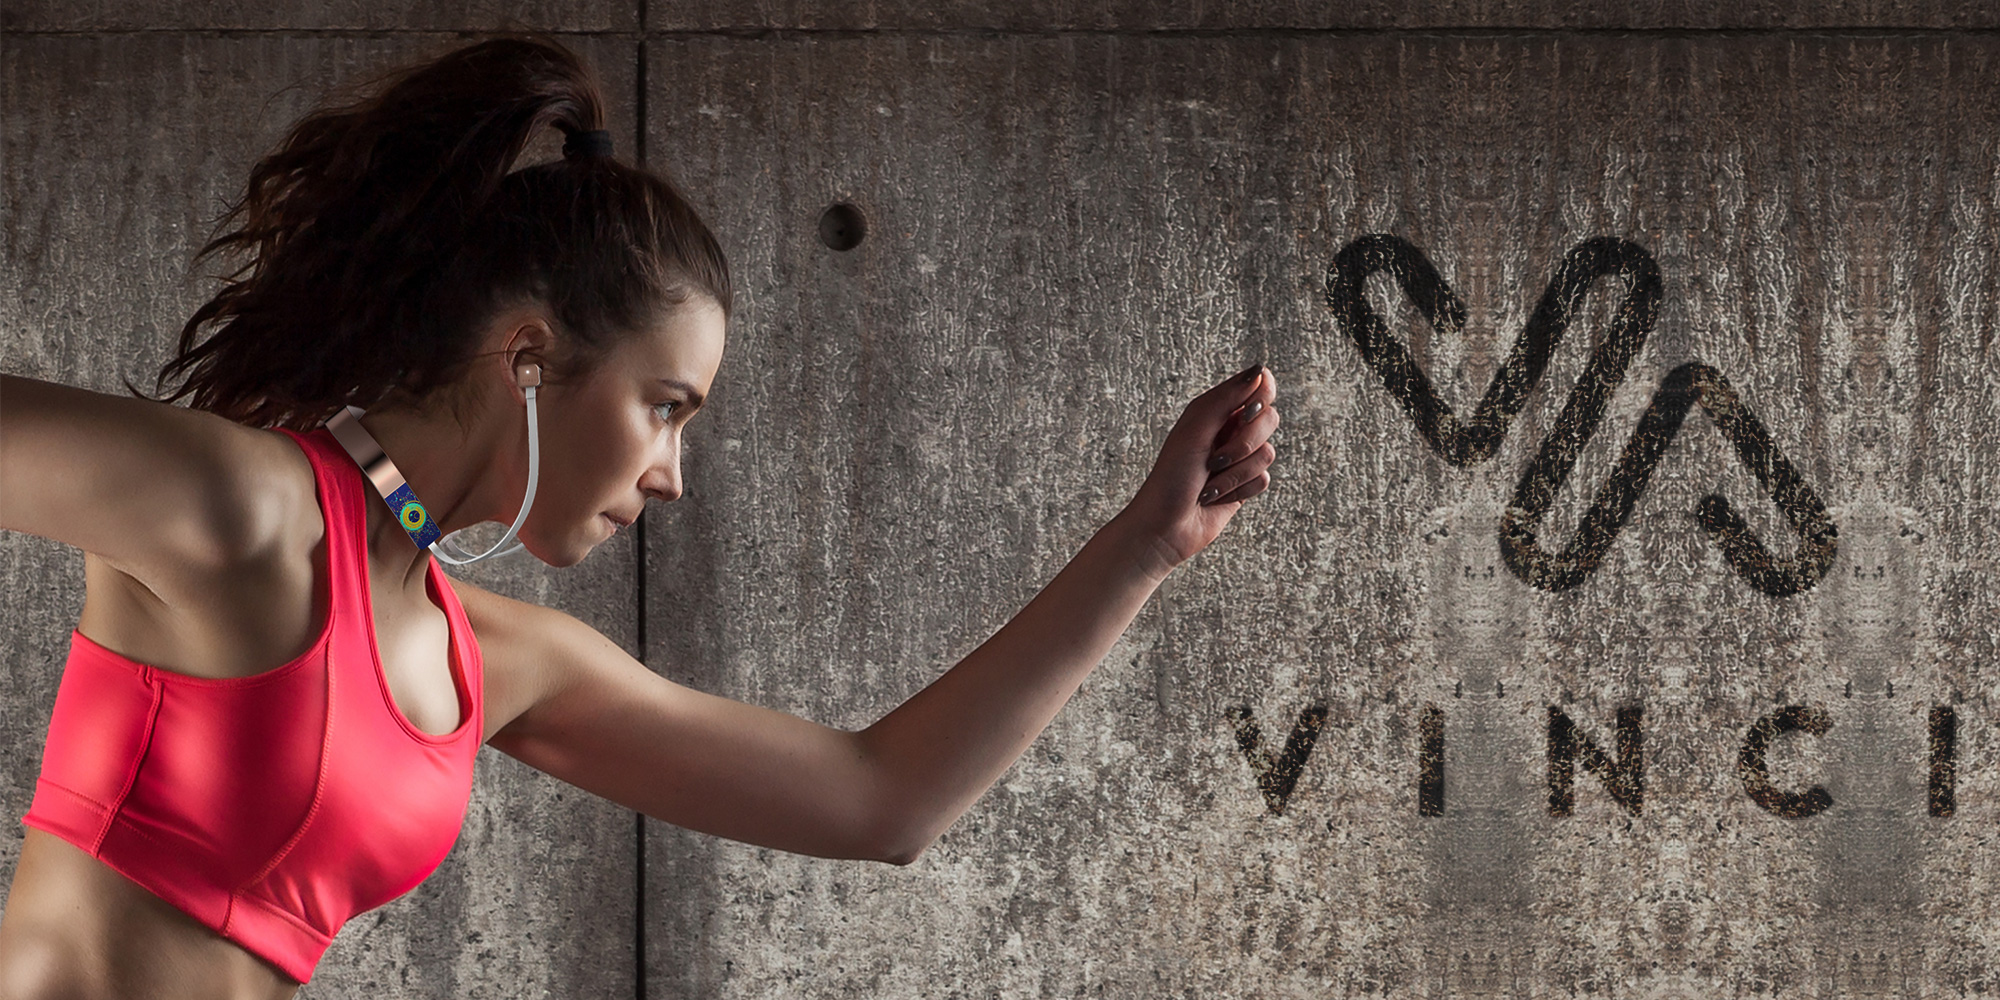 Vinci 2.0 bring 3G connections and phone-free operation to workout headphones